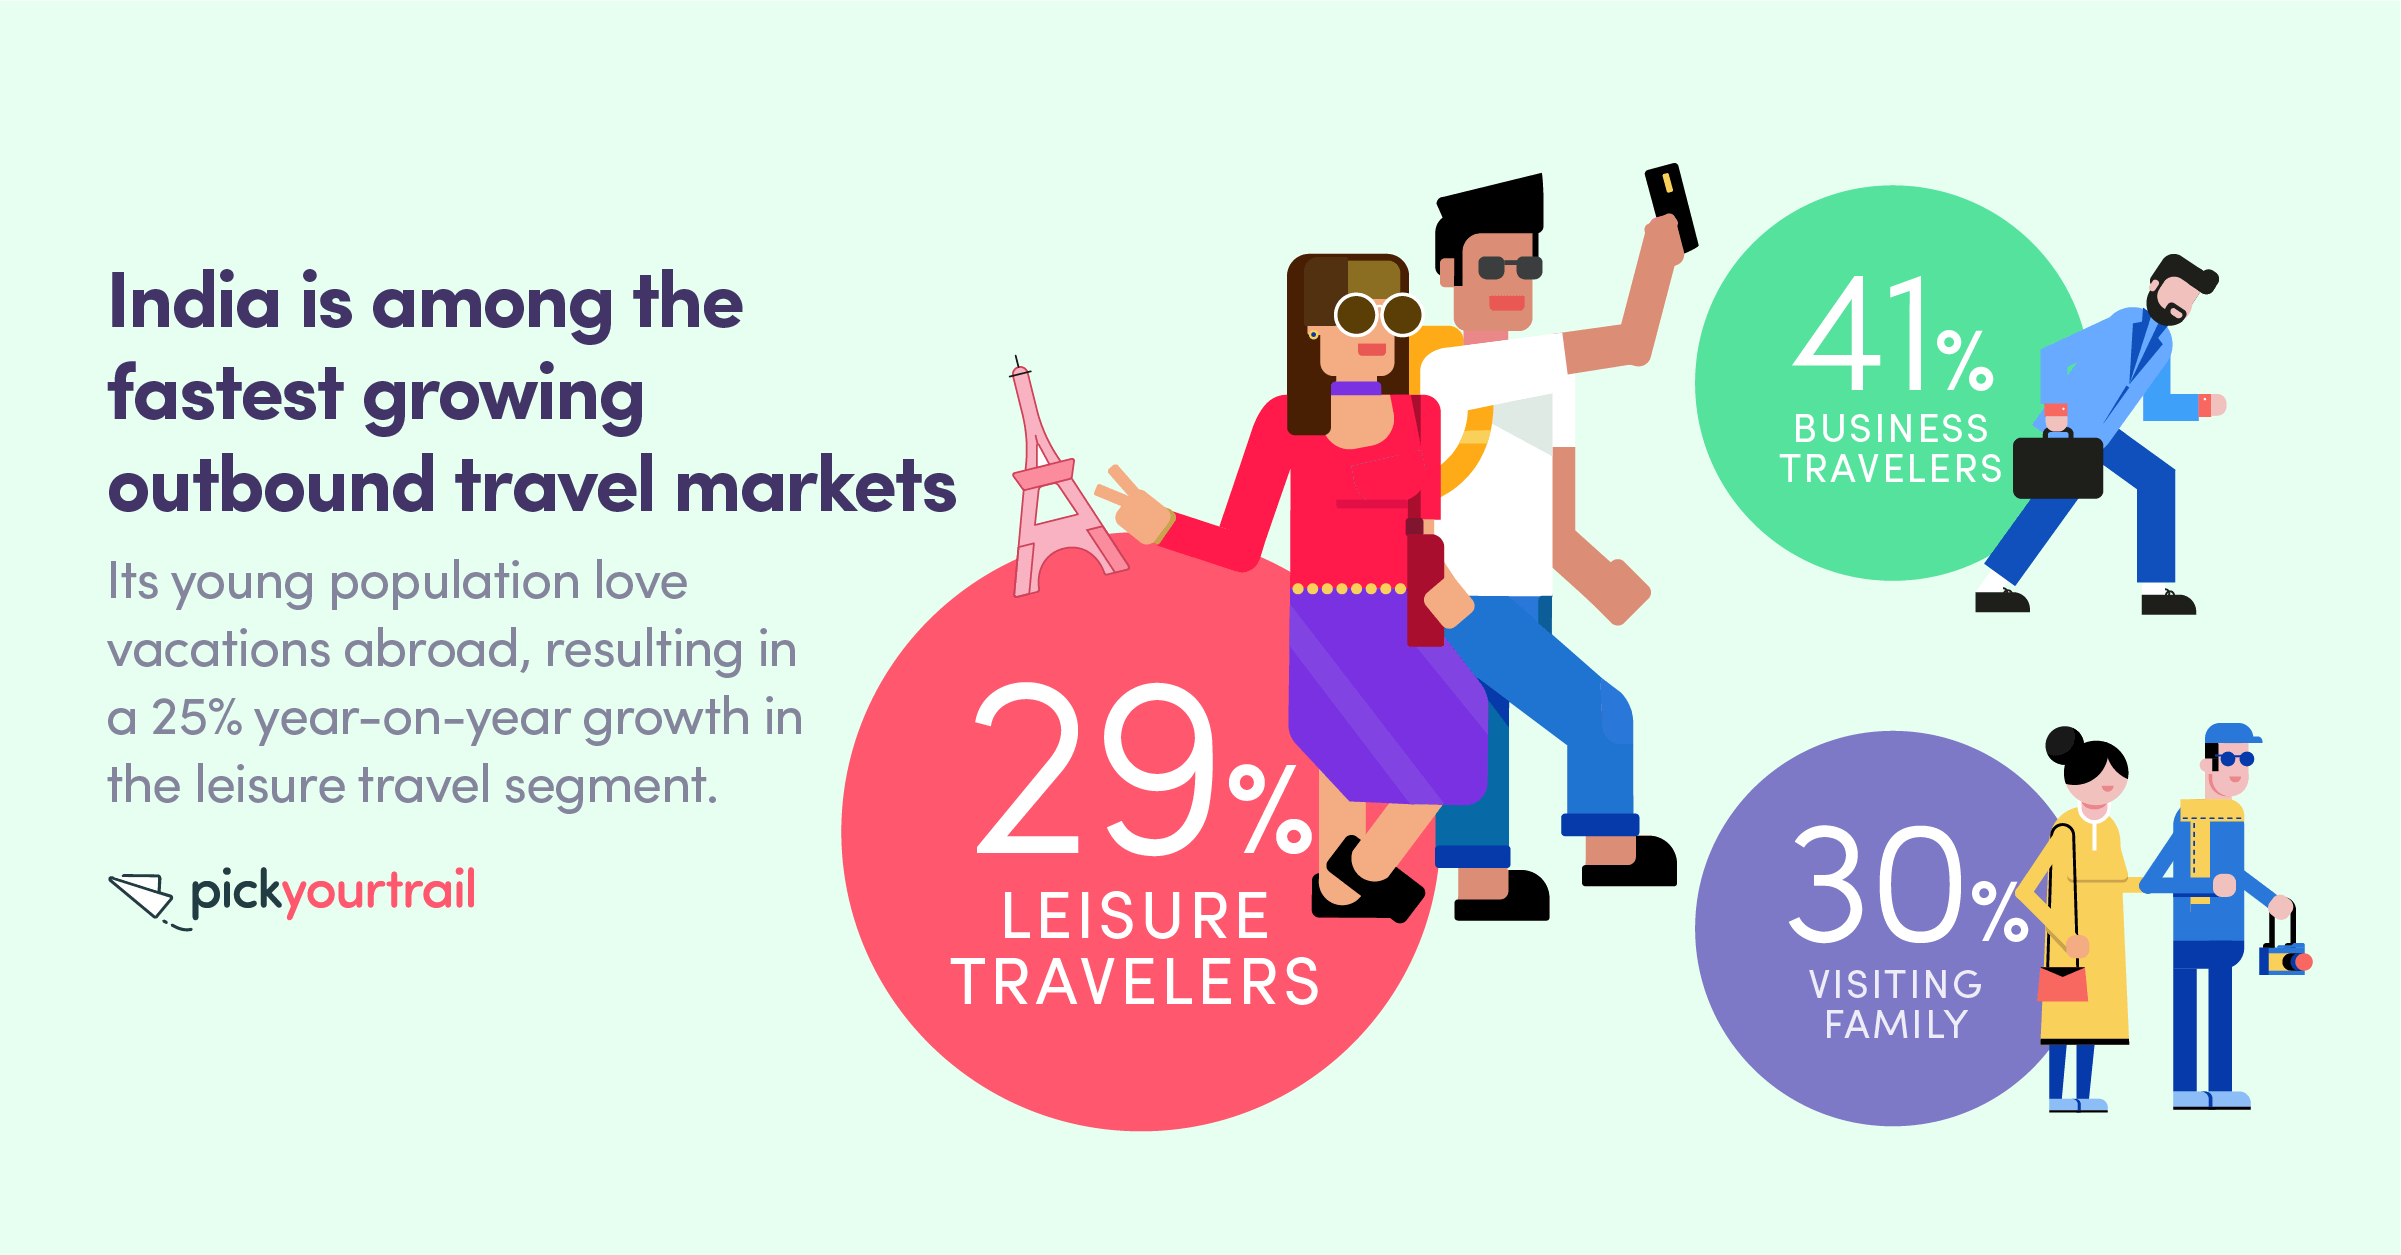 Indians are vacationing more often! We take our vacations at least once a year, apart for business travel and family visits.